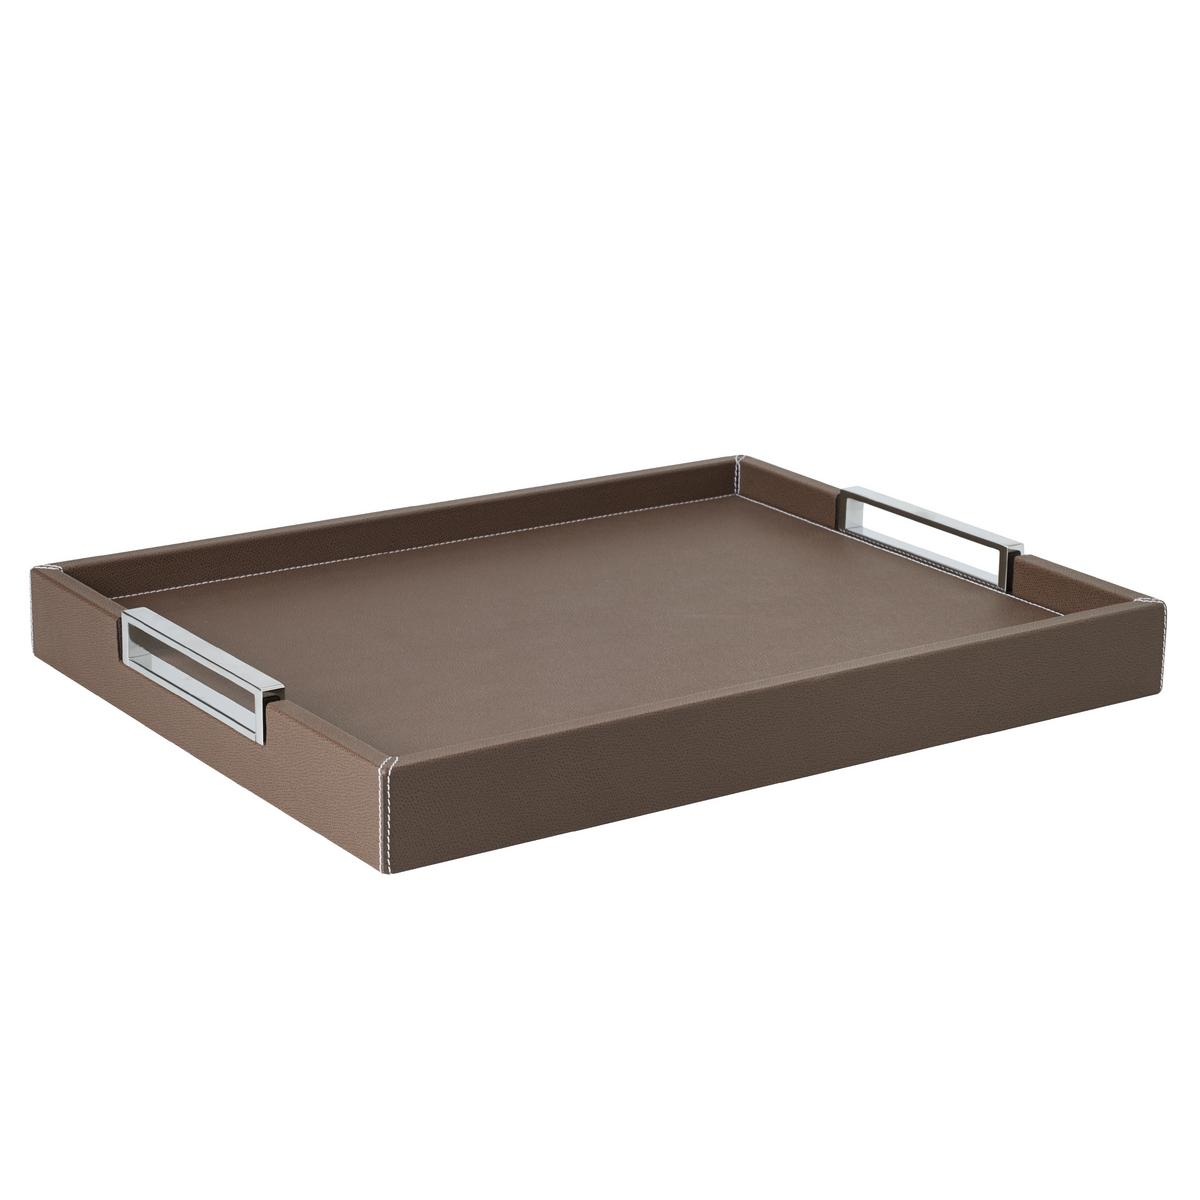 Bed Trays 28 Images Cambridge Bed Tray Bed Trays Bed